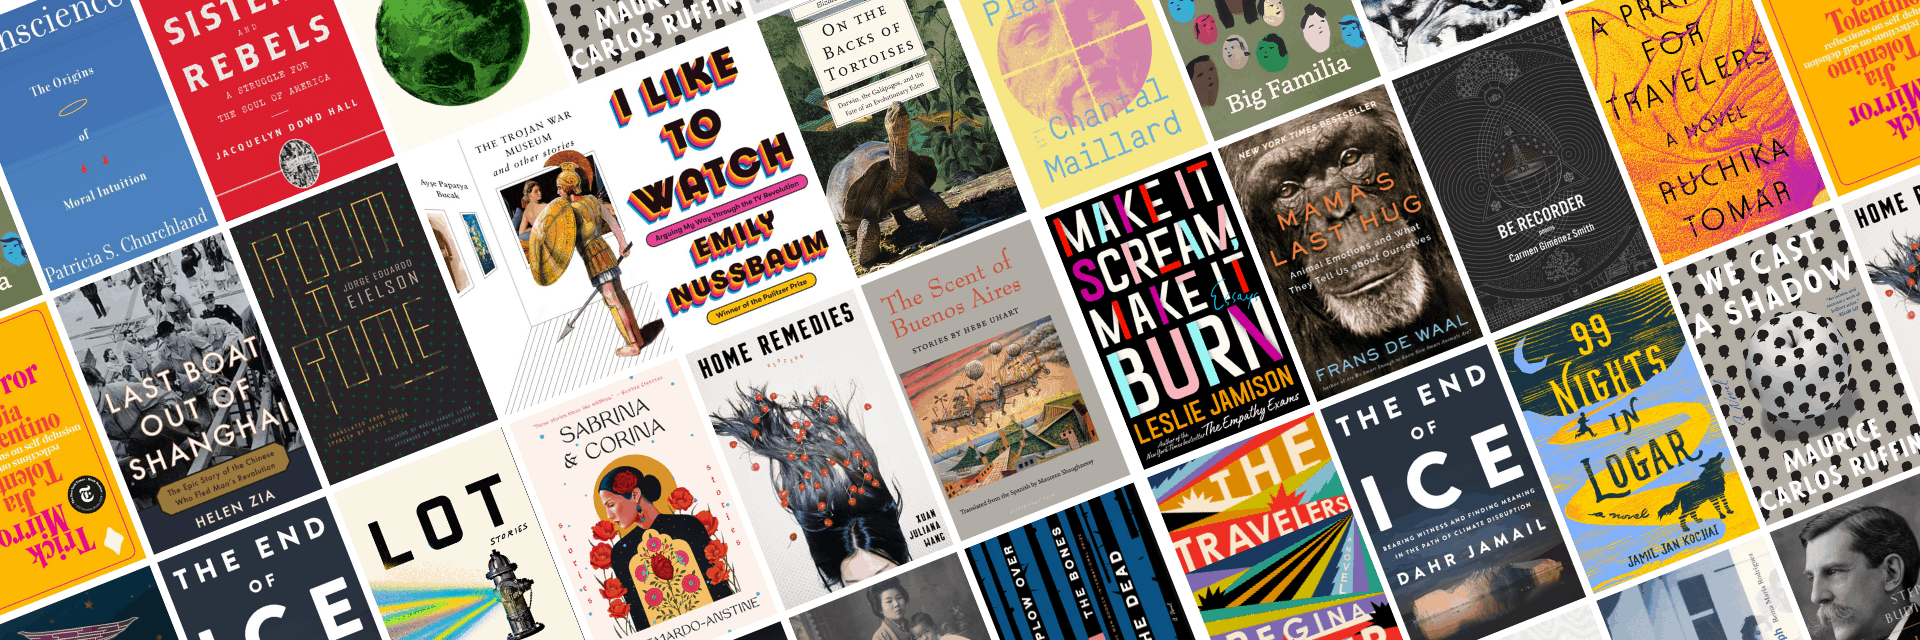 Announcing the 2020 PEN America Literary Awards Finalists